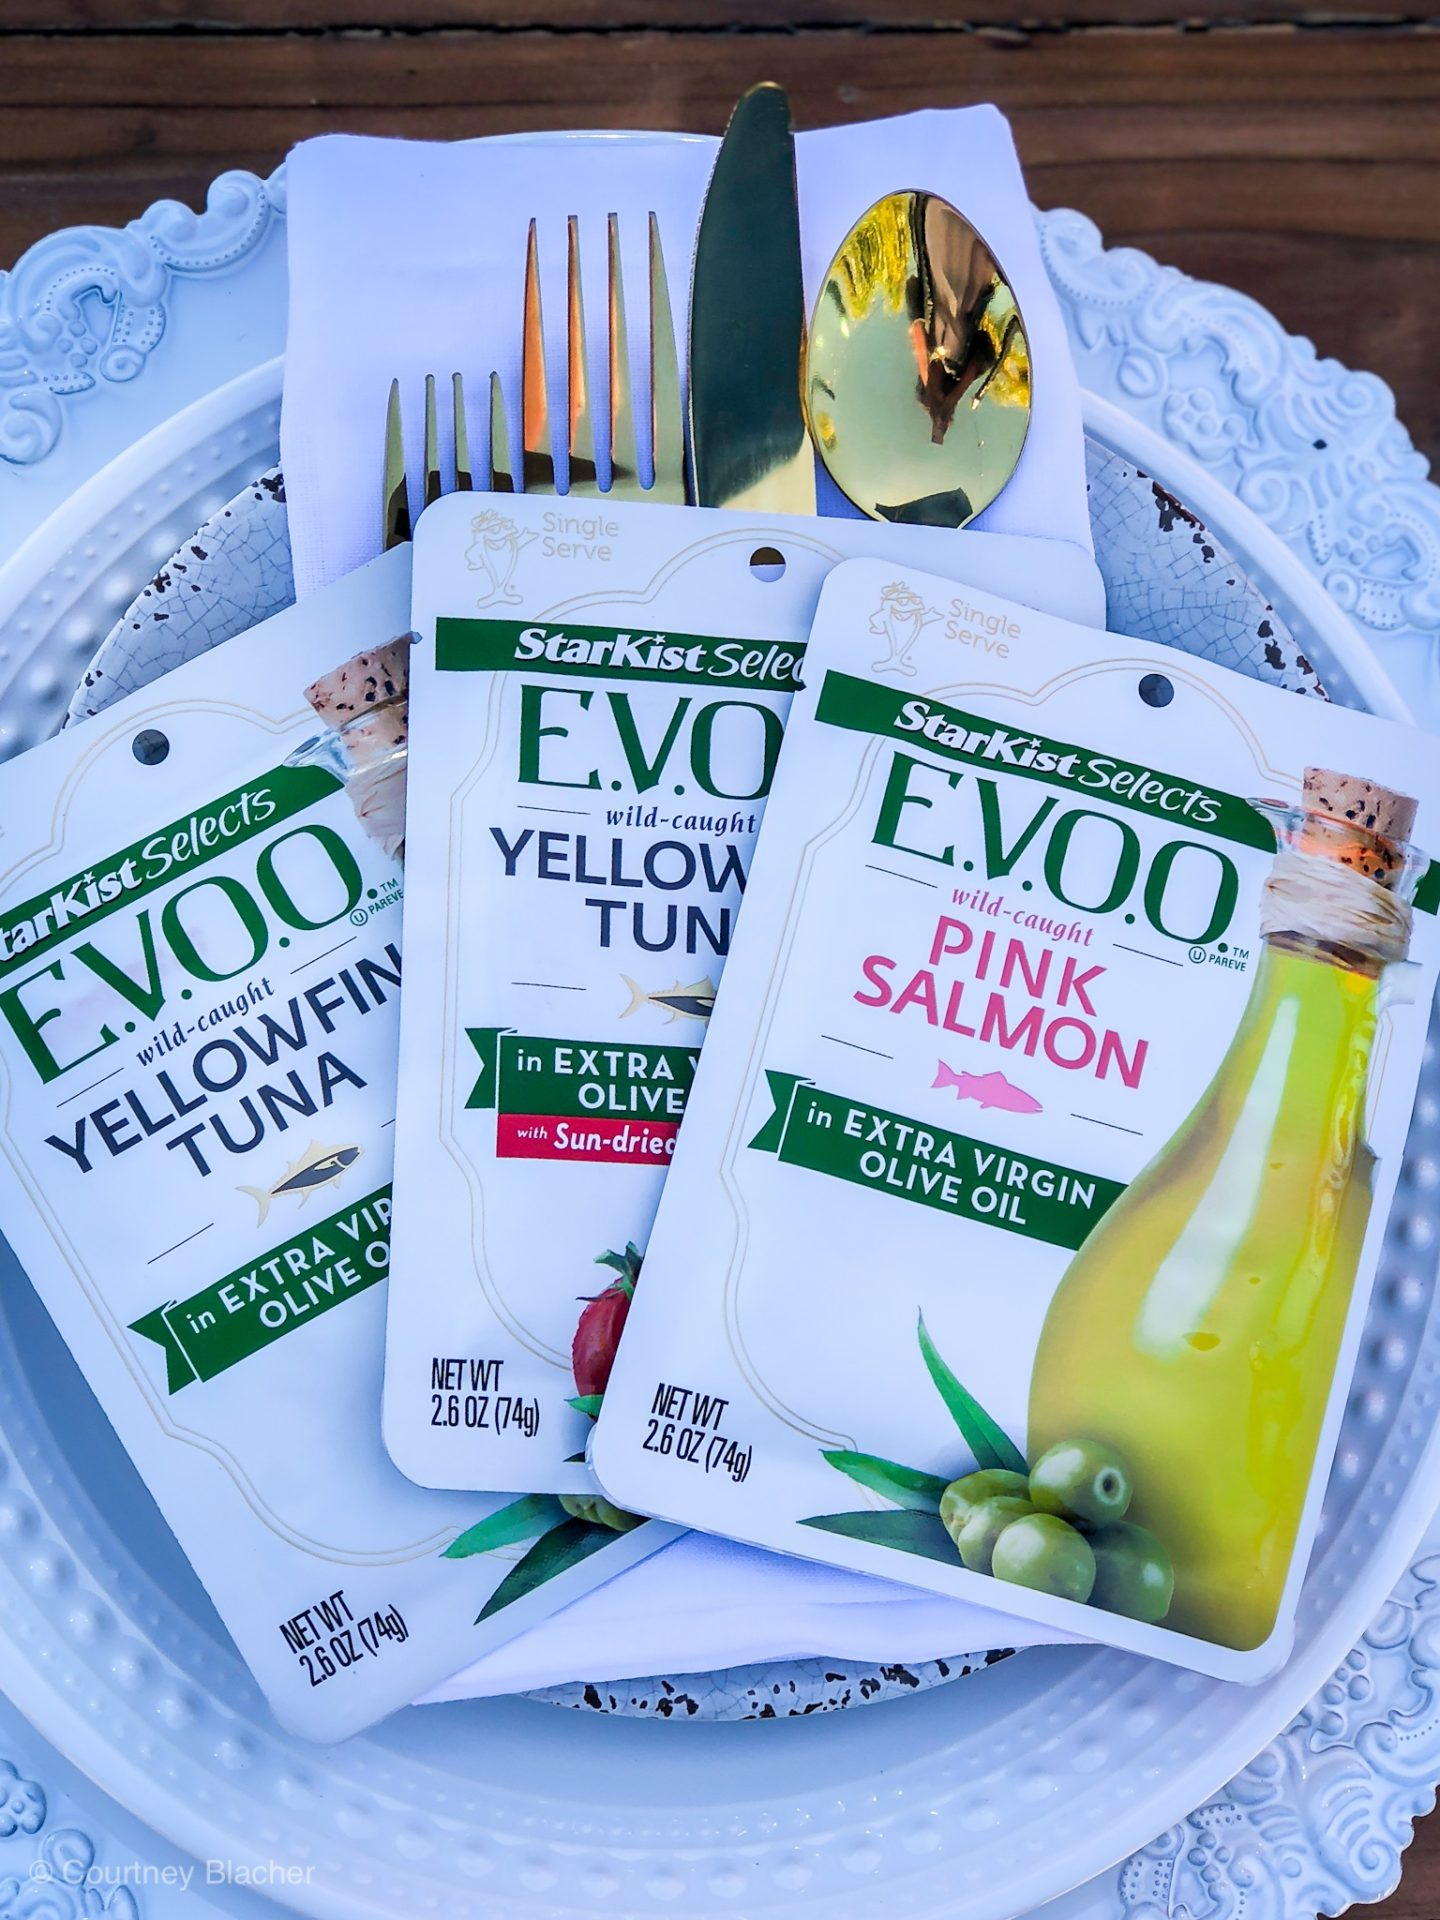 StarKist Tuna Meal Ideas Featuring StarKist Selects E.V.O.O.